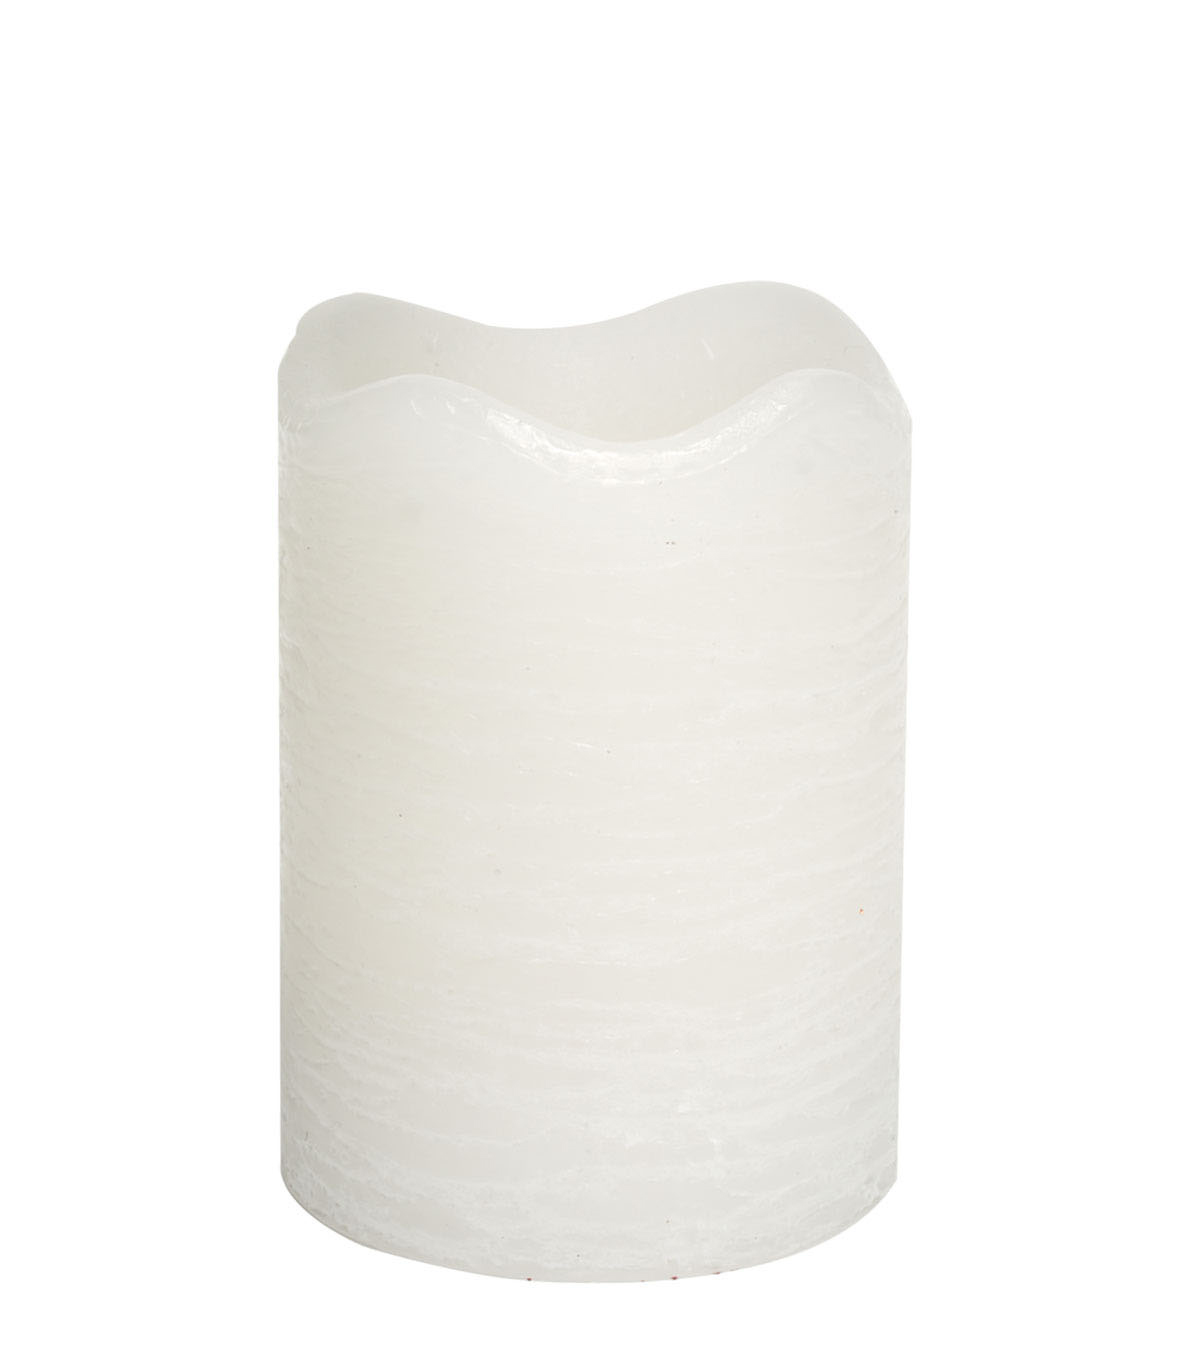 Hudson 43™ Candle & Light Collection 3X4 White Rustic Pillar